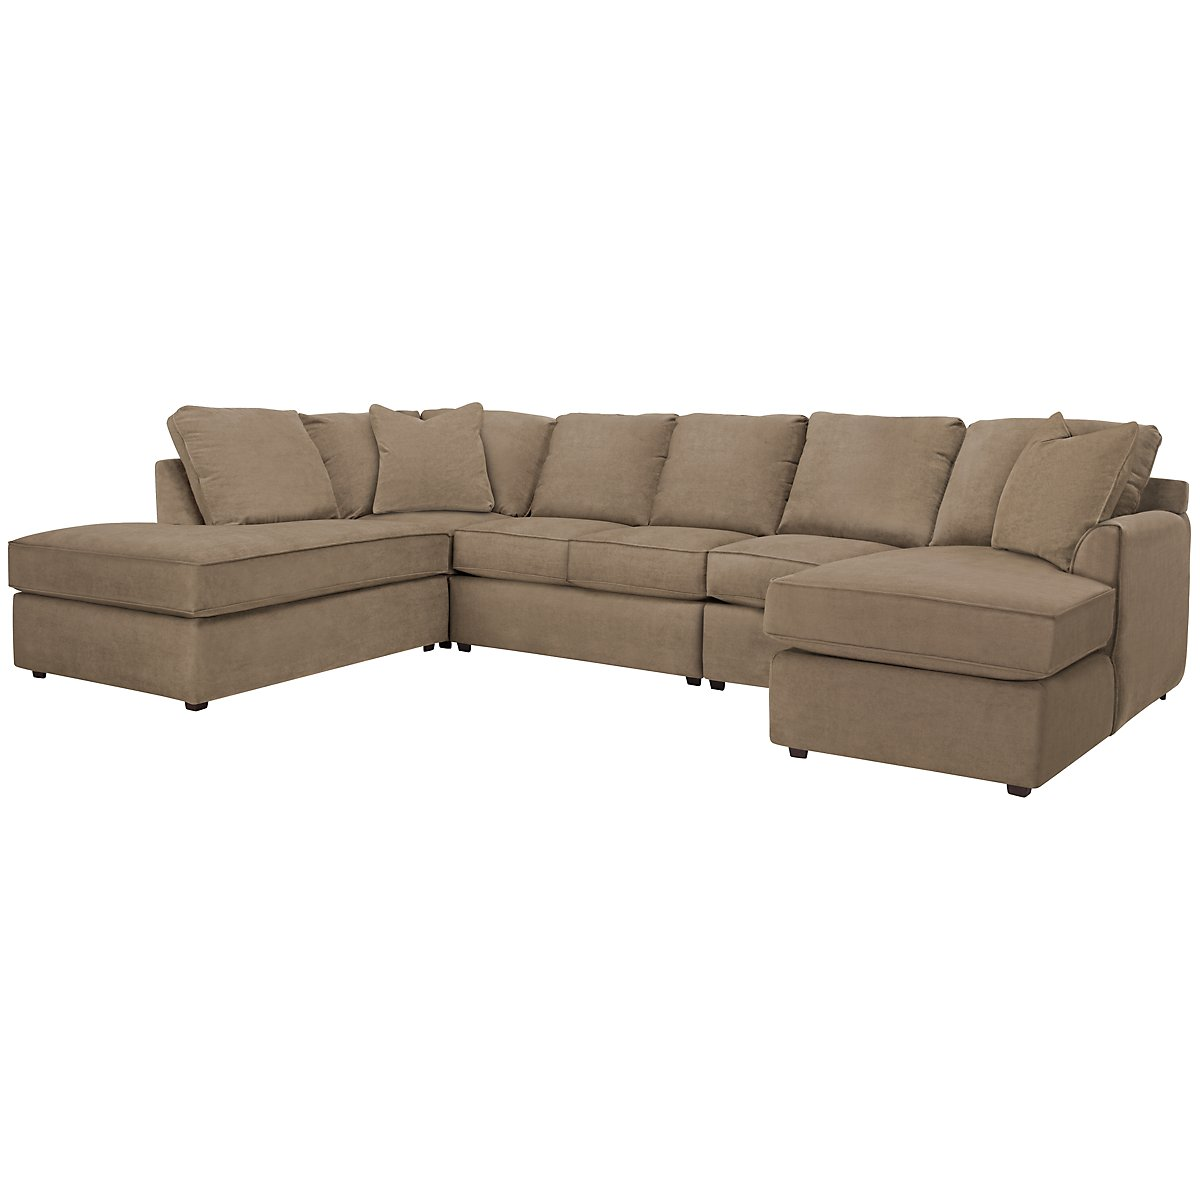 Express3 Lt Brown Microfiber Large Left Bumper Sectional